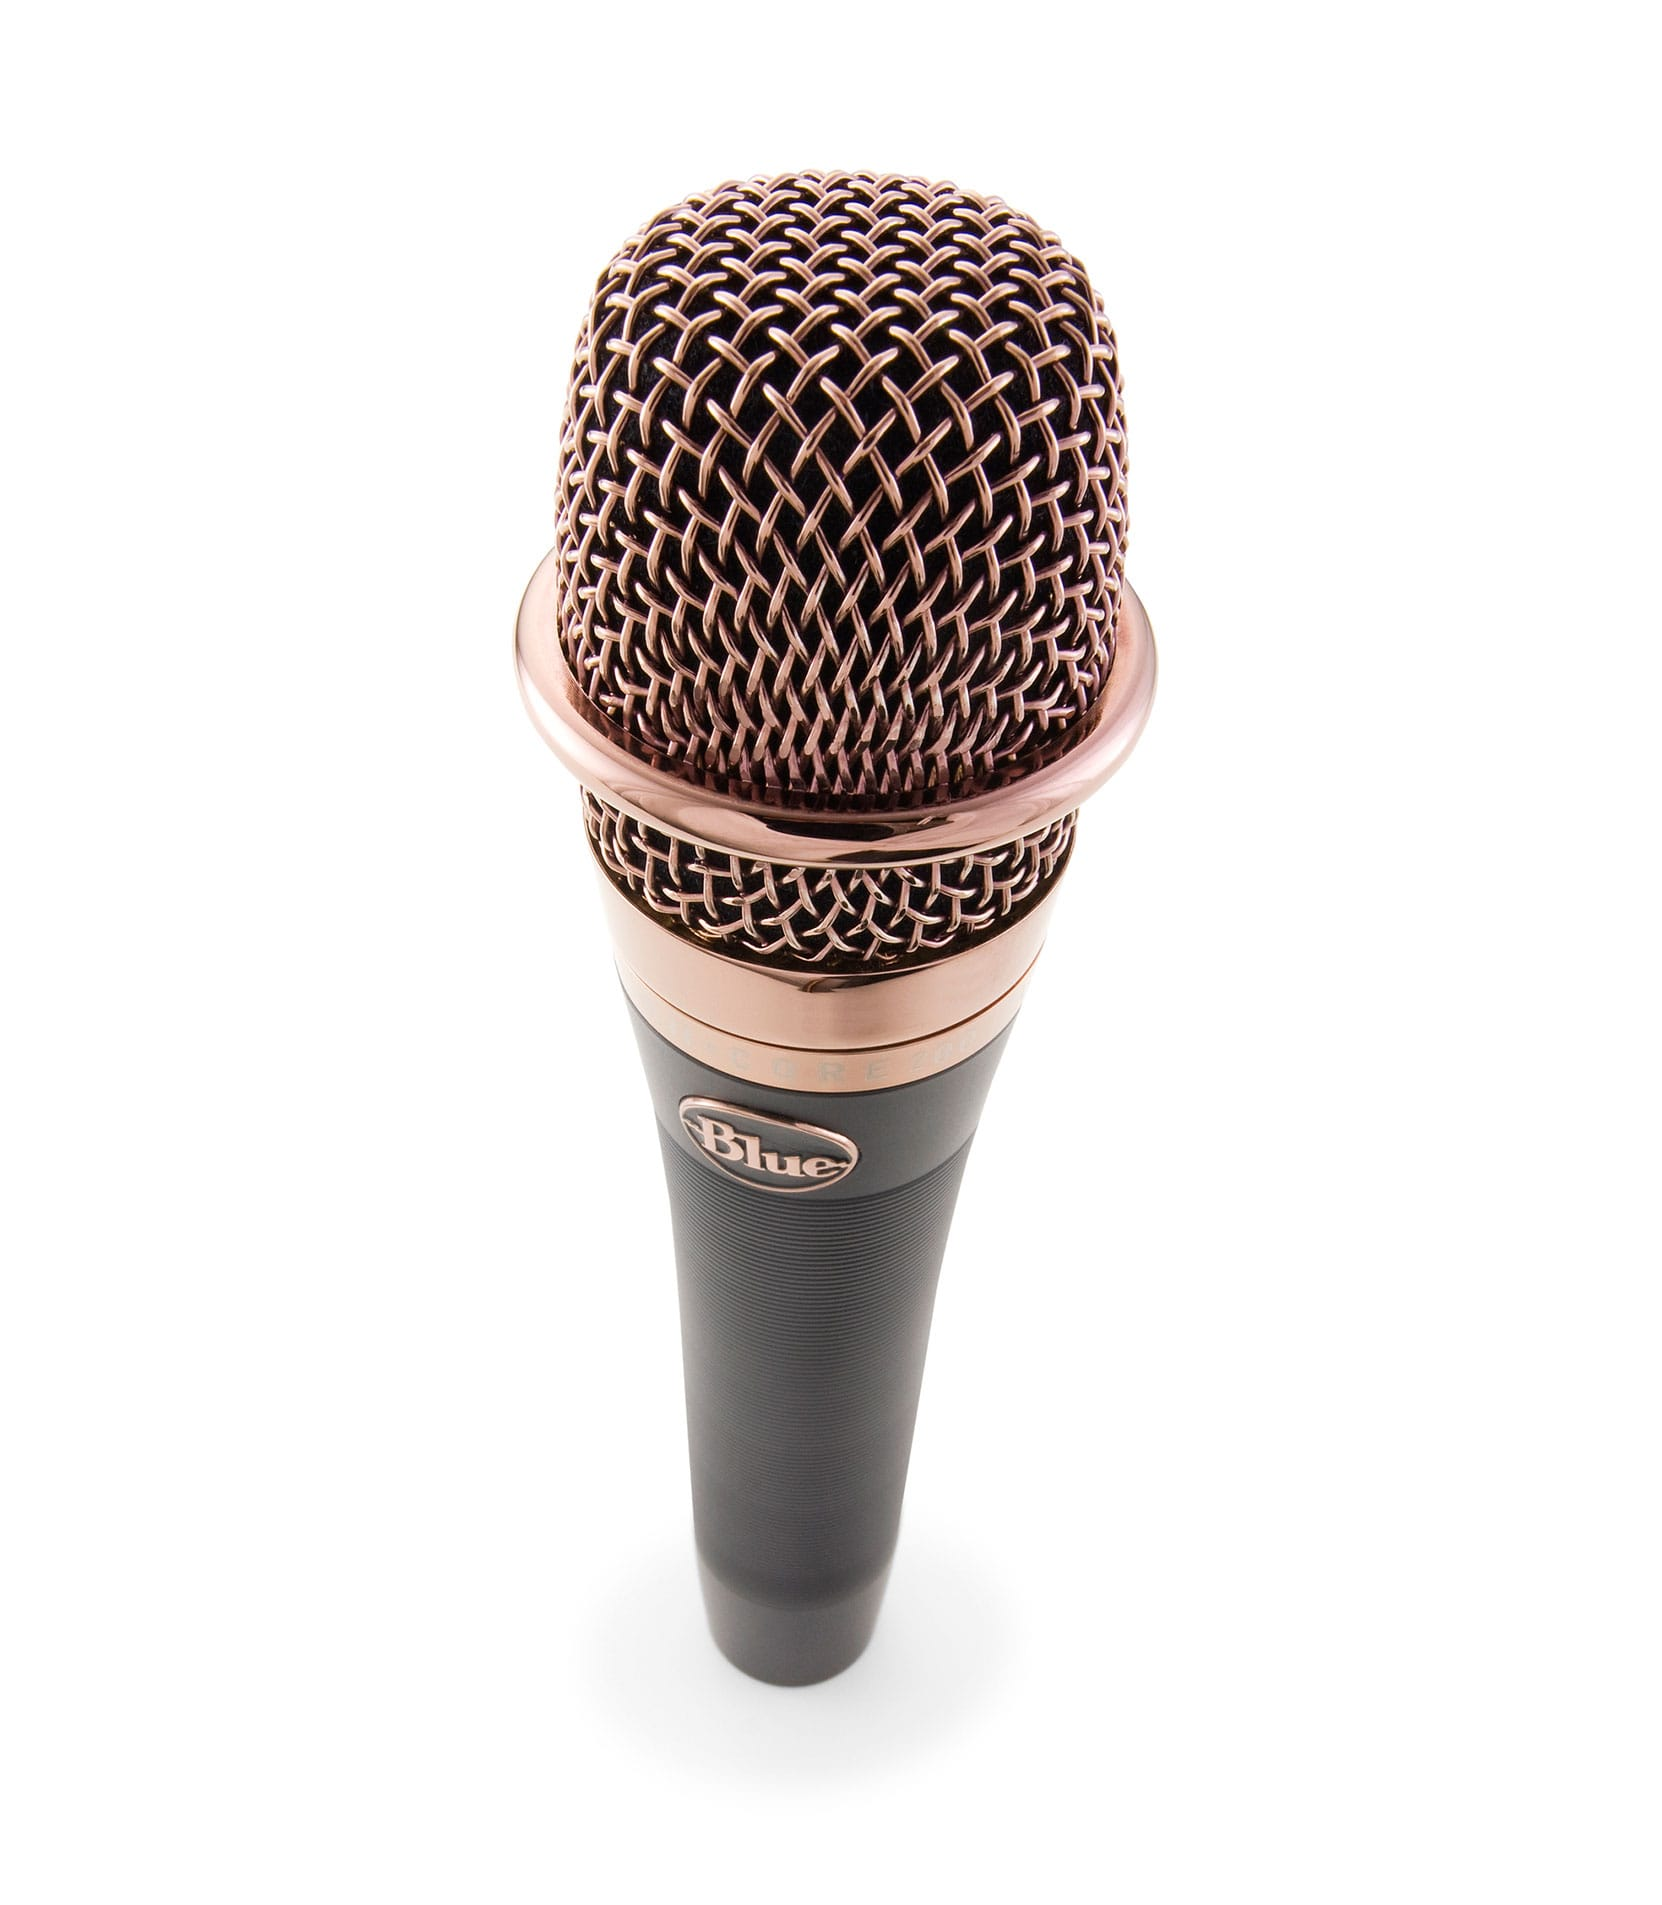 blue - Encore200 Cardioid Active Dynamic Mic Black Finish - Melody House